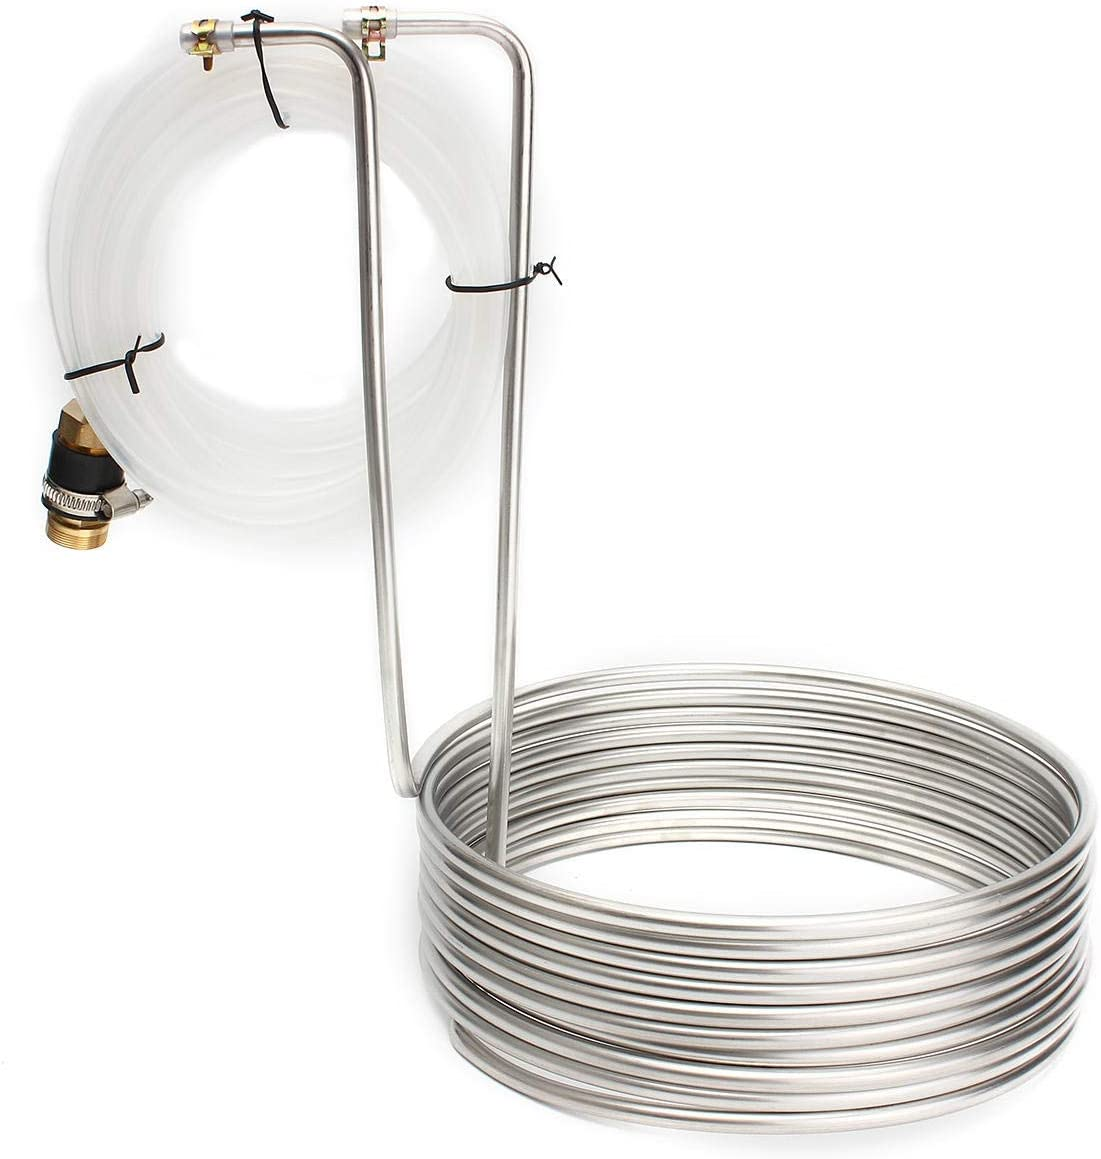 Stainless Steel Food Grade Cooling Home Brew Coil Immersion Limited online shopping price Pipe